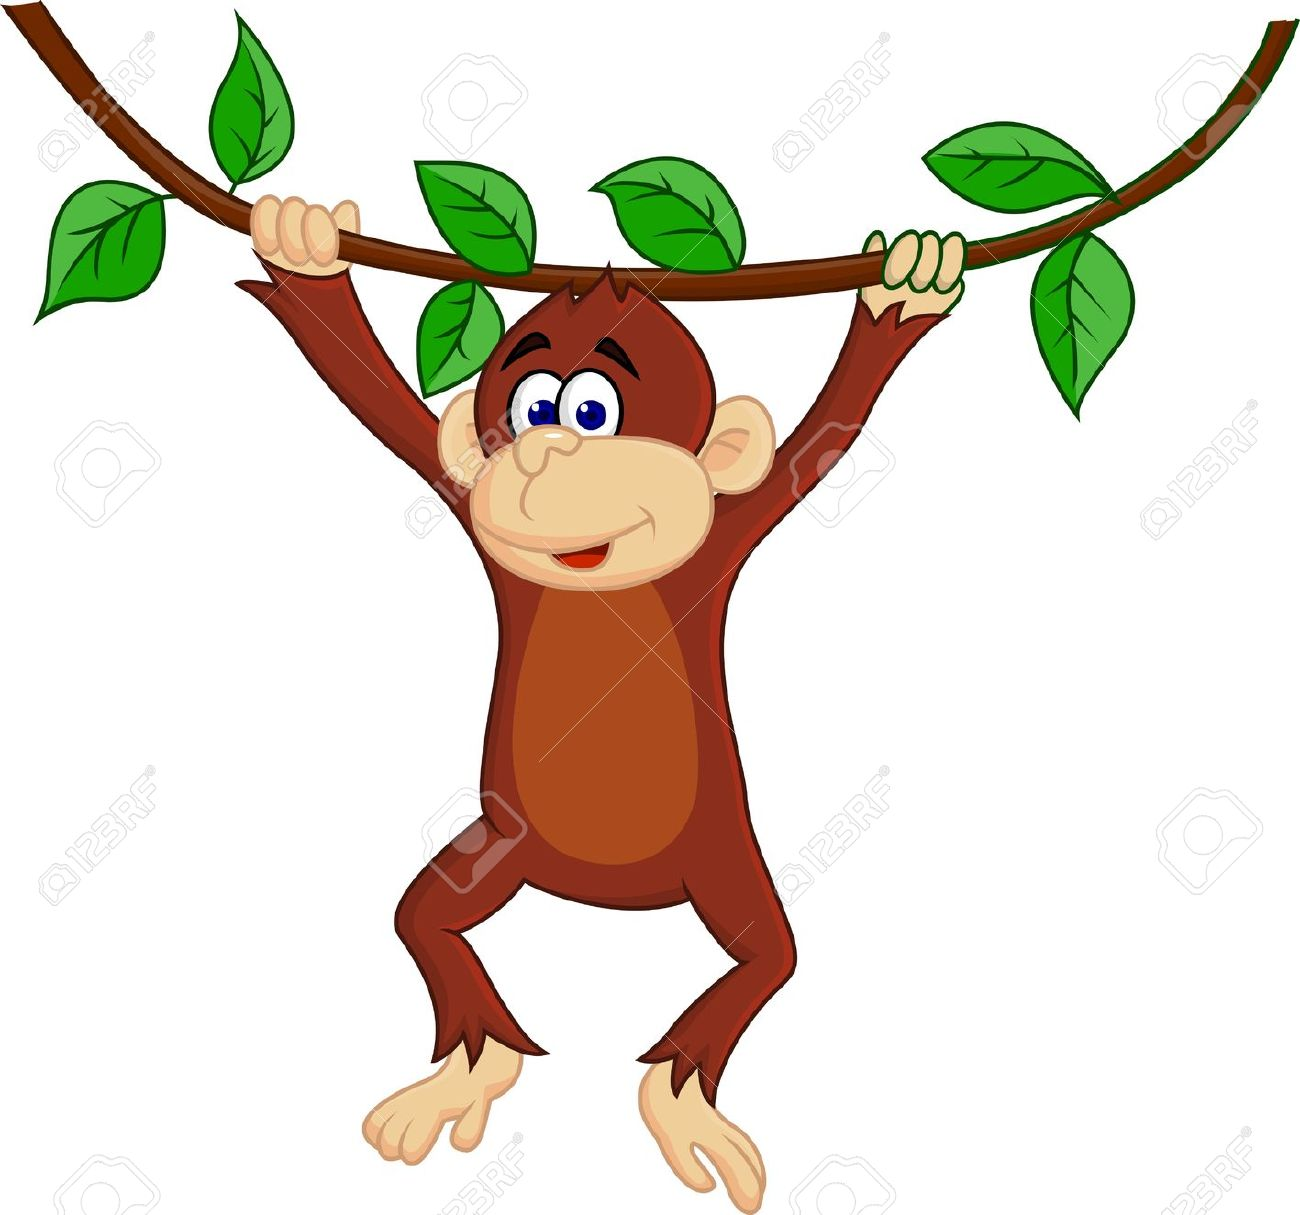 Hanging Monkey Clipart.